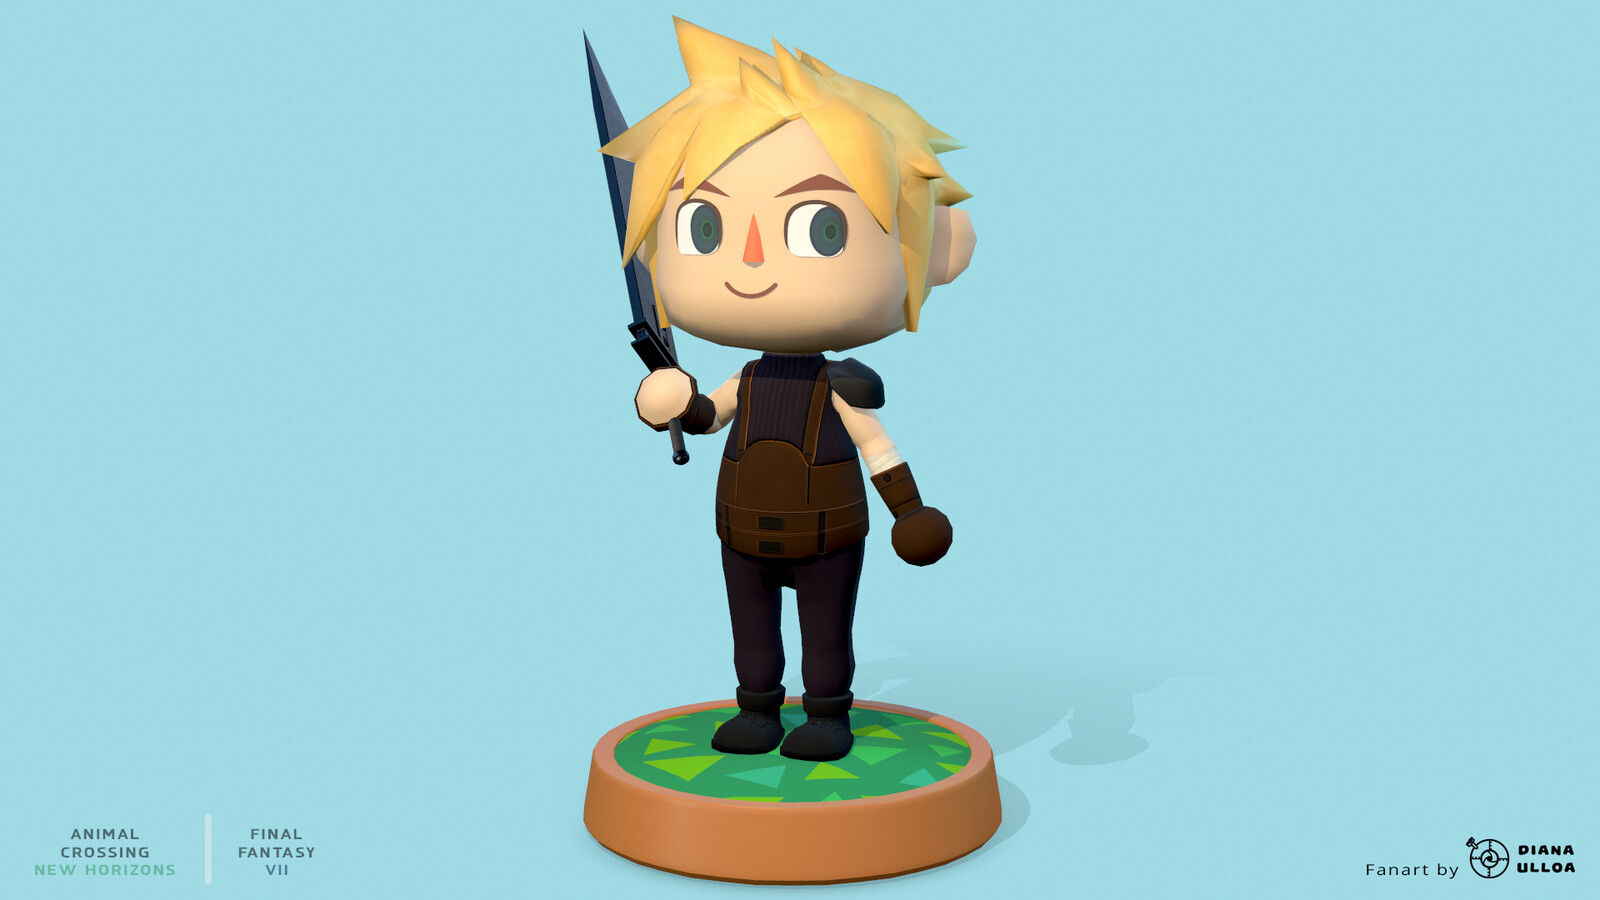 Custom Villager character. A crossover between Final Fantasy VII and Animal Crossing New Horizons